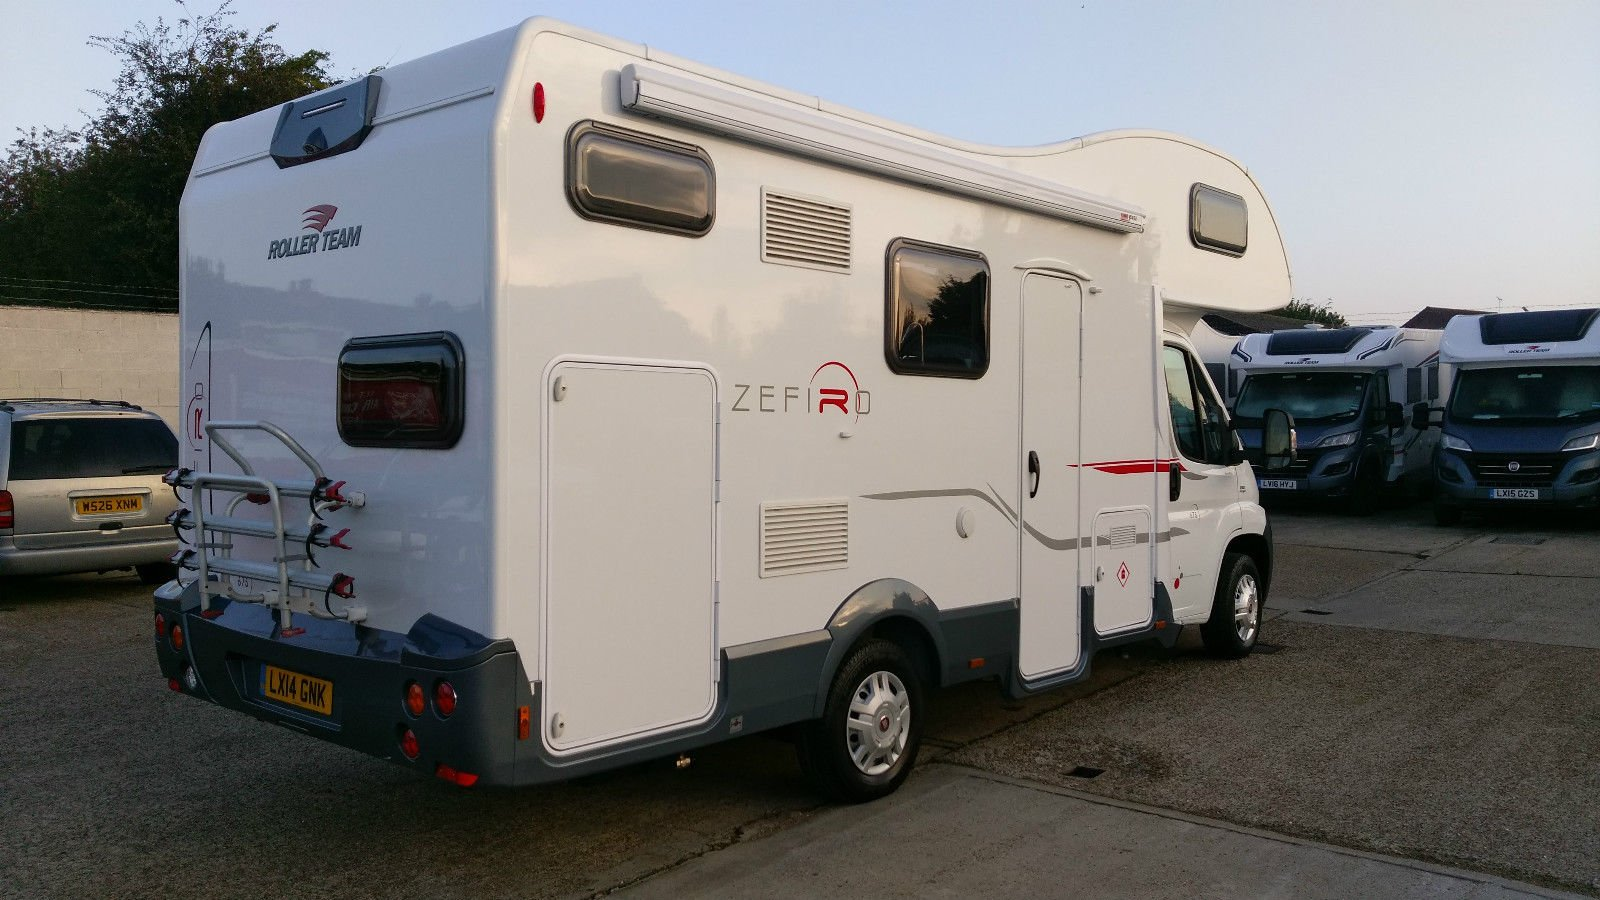 roller team, zefiro 675, 6 beth, motorhome, with 6 seat belts, for sale, second hand, used, motor home,